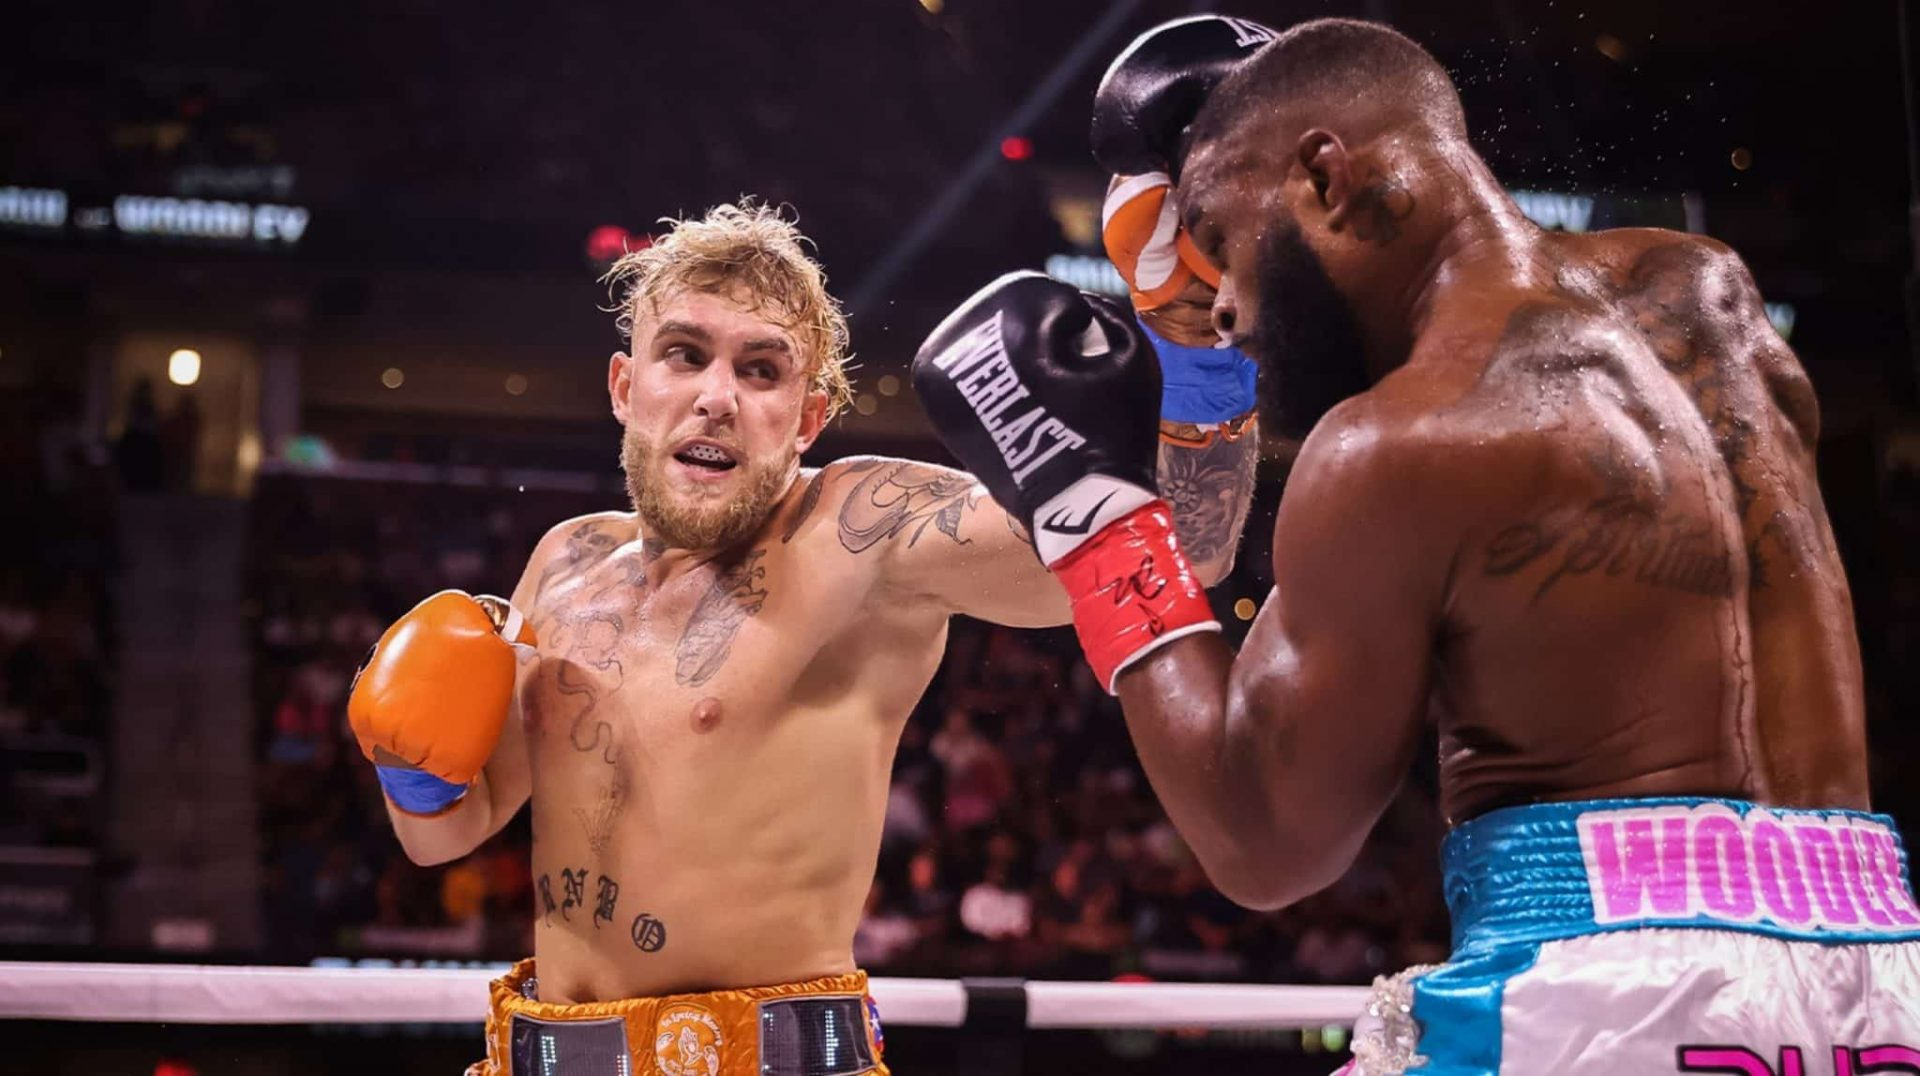 Jake Paul says he fought Tyron Woodley with an Elbow injury - paul